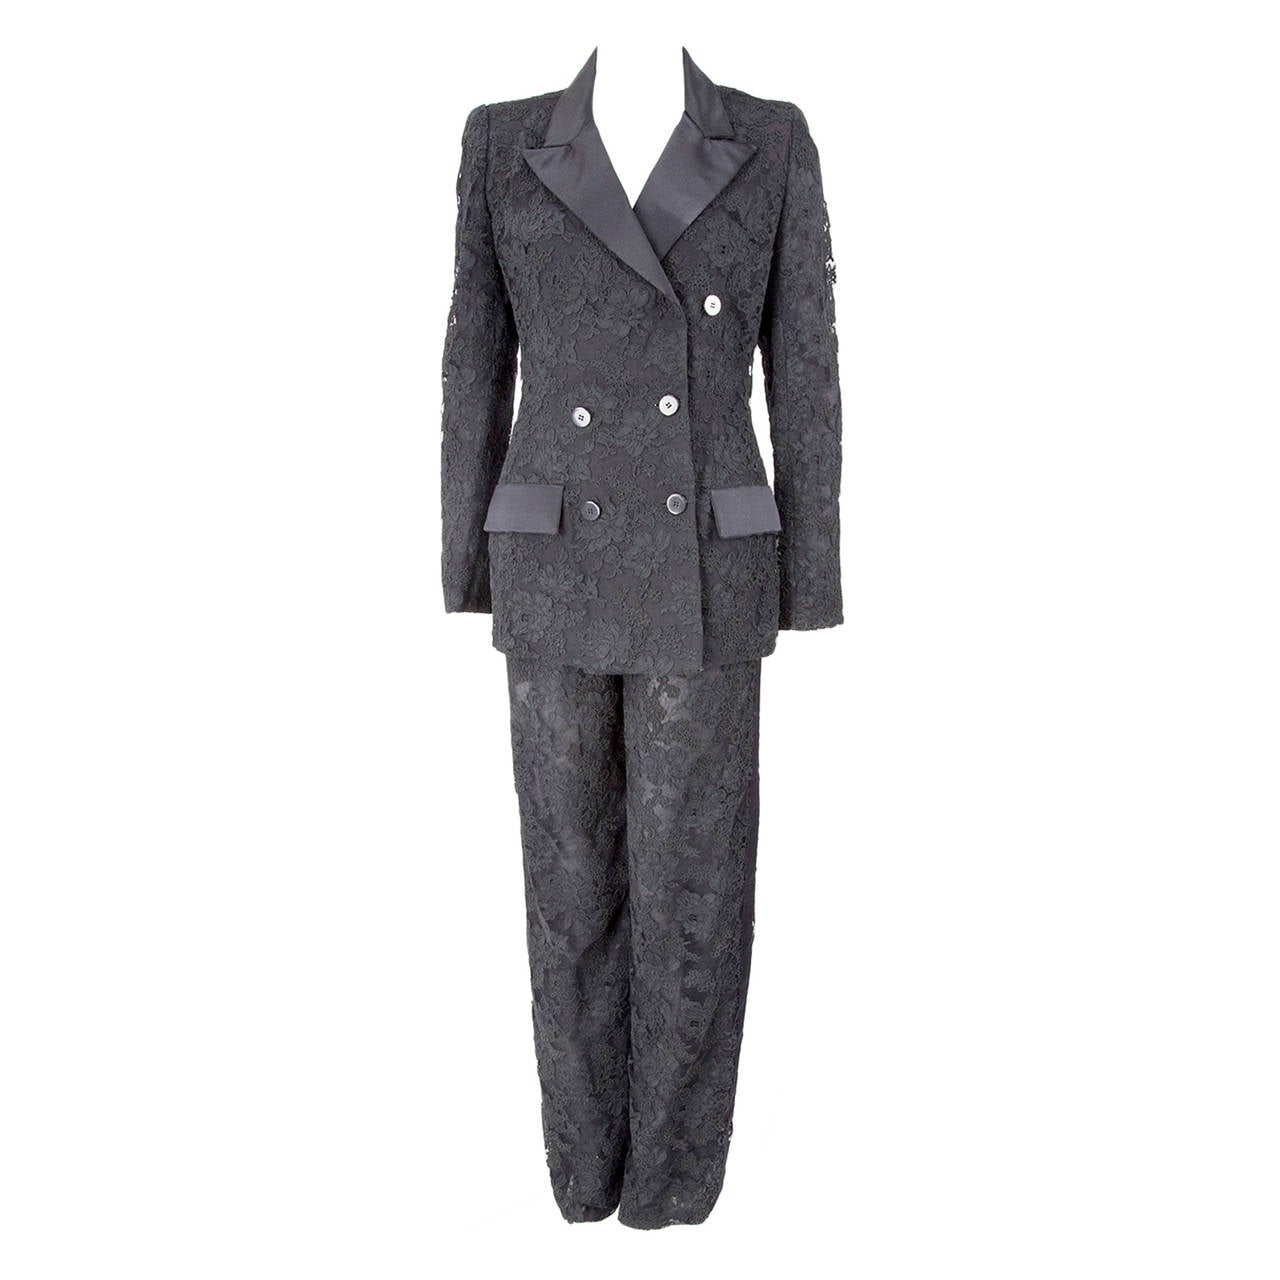 Bill Blass Black Alençon Lace and Satin Cocktail Tuxedo Suit